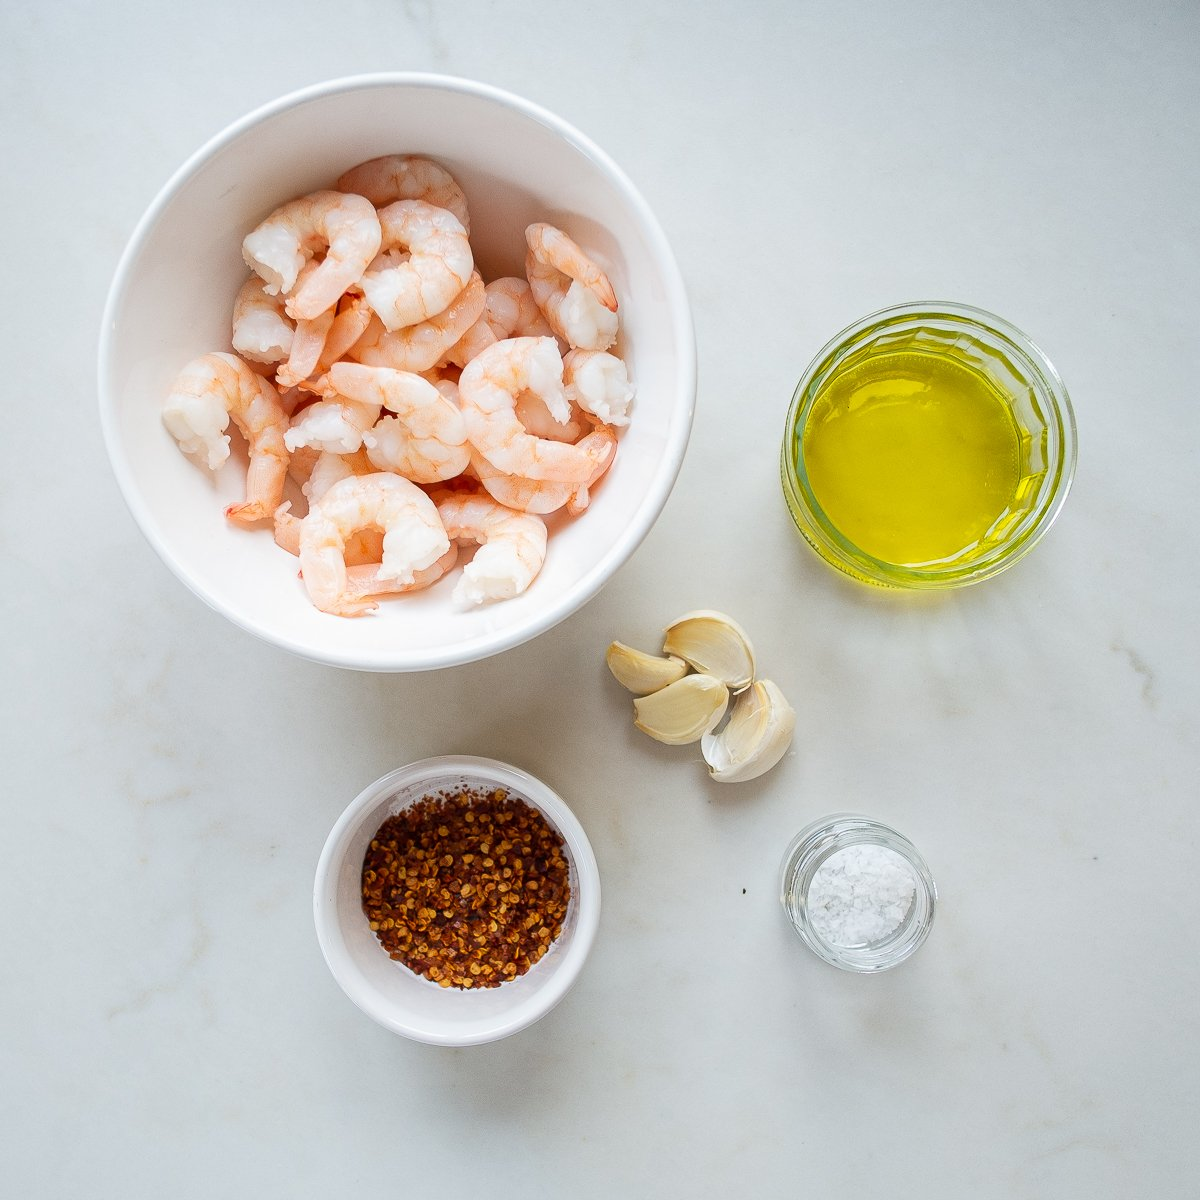 all the ingredients needed to make chilli garlic prawns